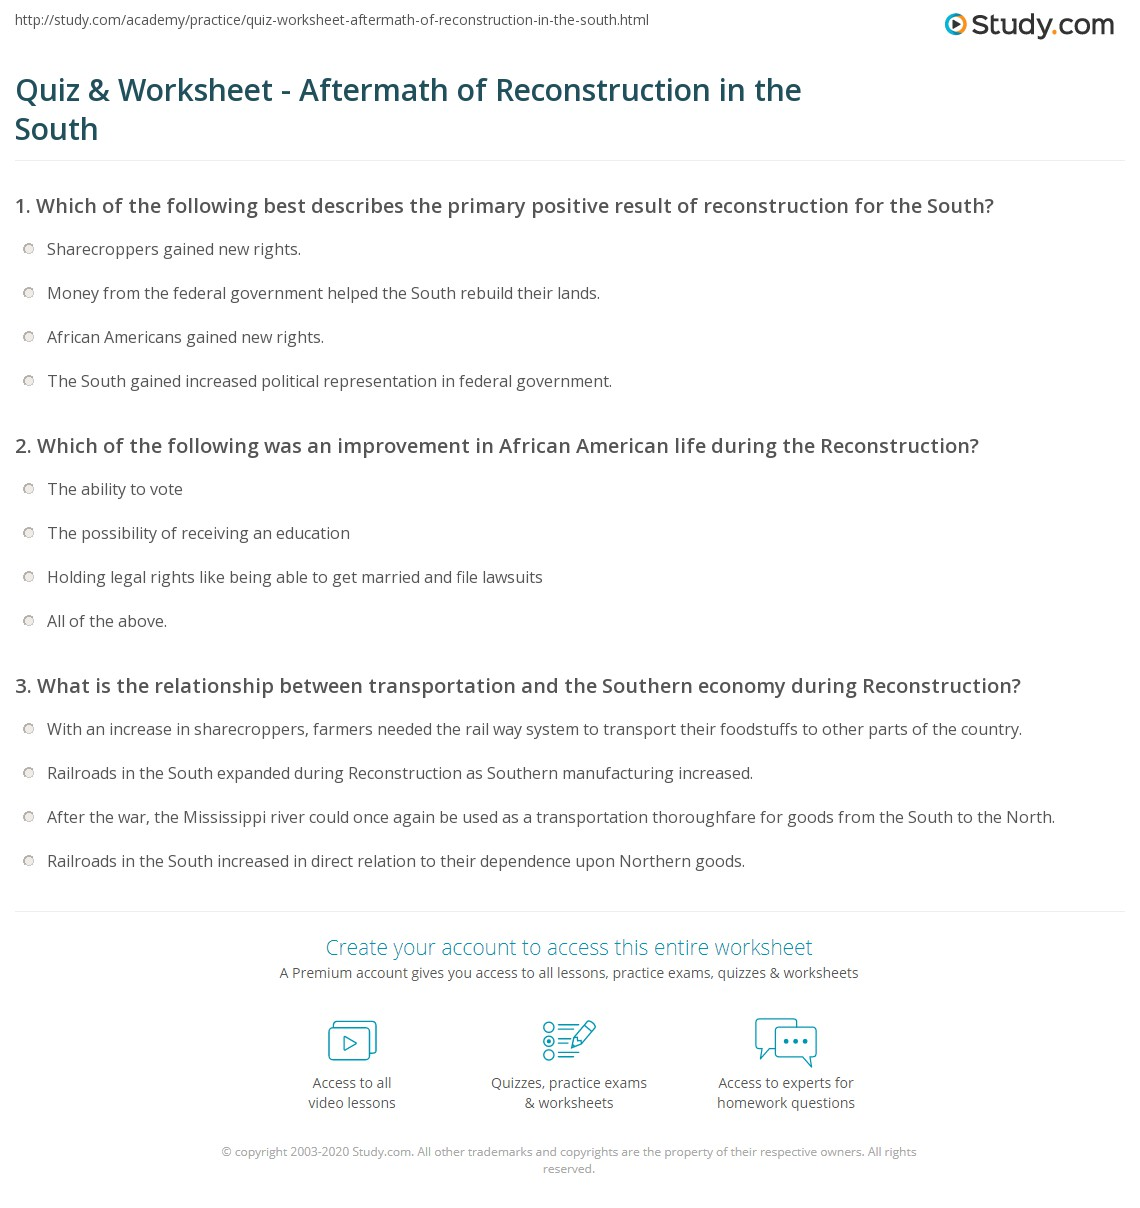 Worksheets Reconstruction Worksheets quiz worksheet aftermath of reconstruction in the south study com print positive negative effects worksheet